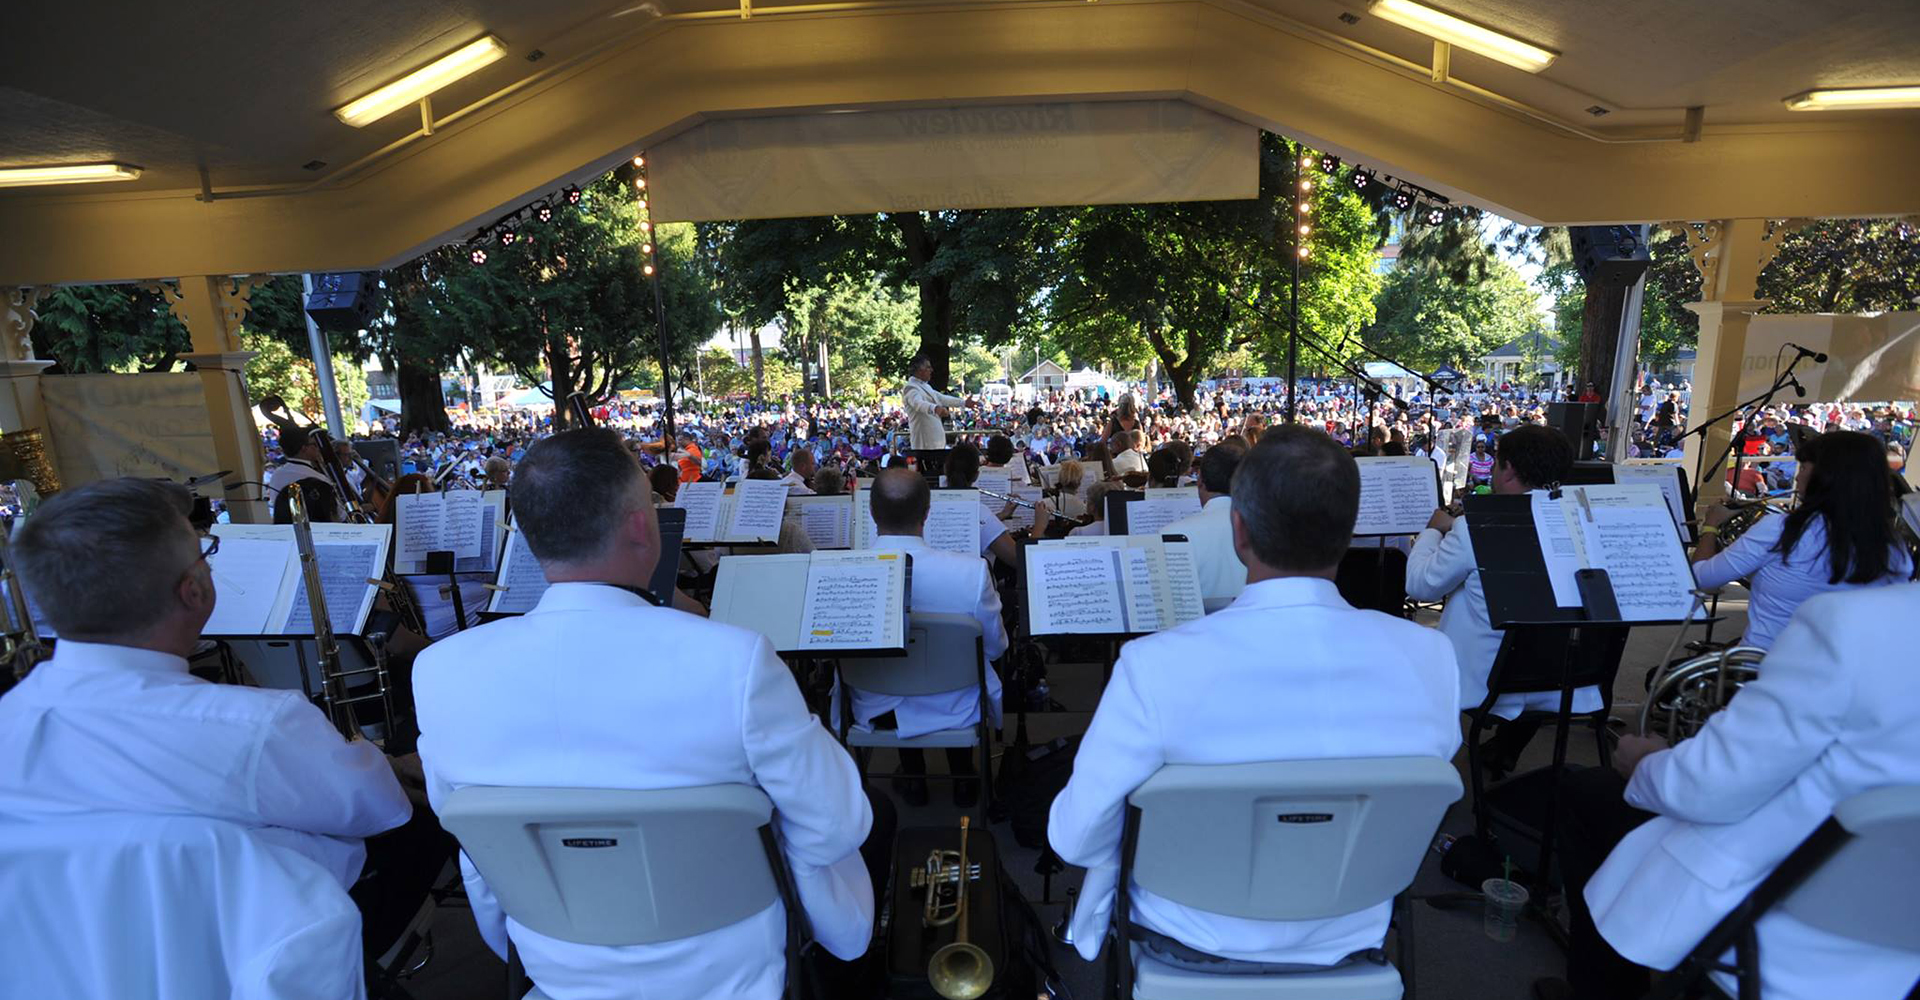 2018 VSO Free Concert In The Park – Vancouver Symphony